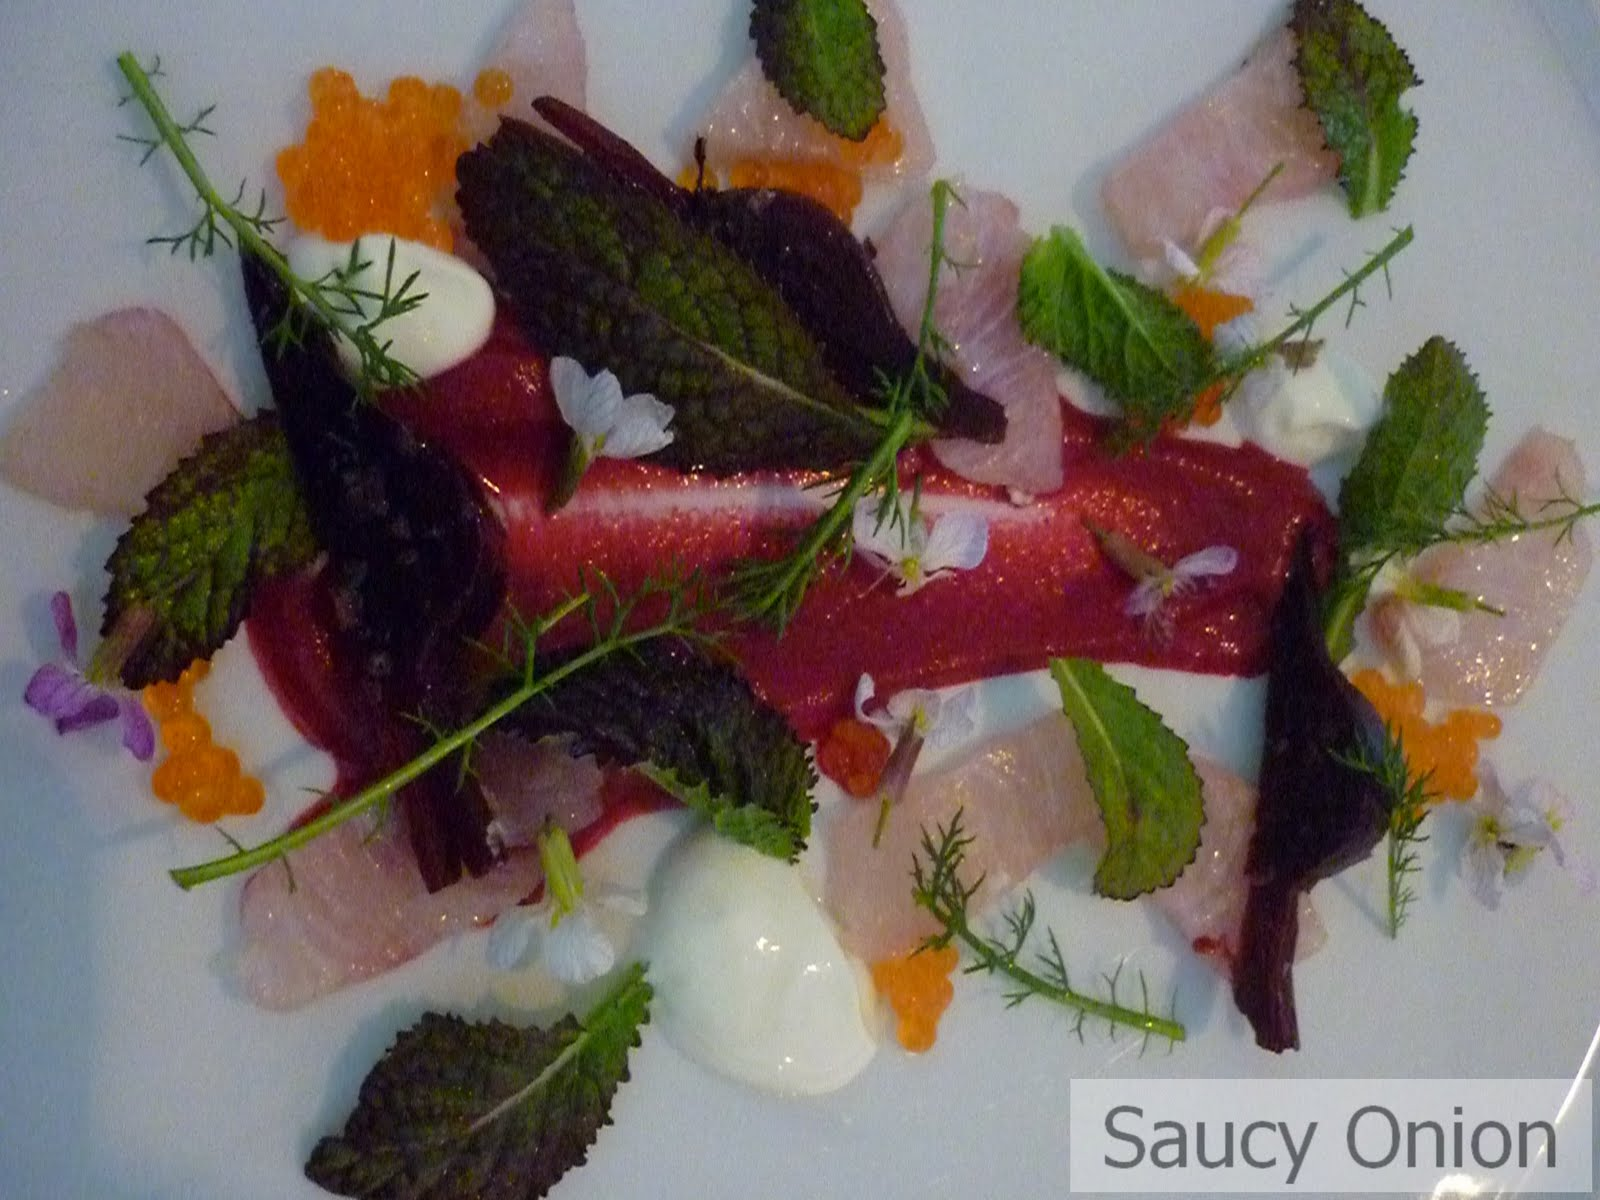 Saucy Onion: Bowral, NSW - Biota Dining Restaurant